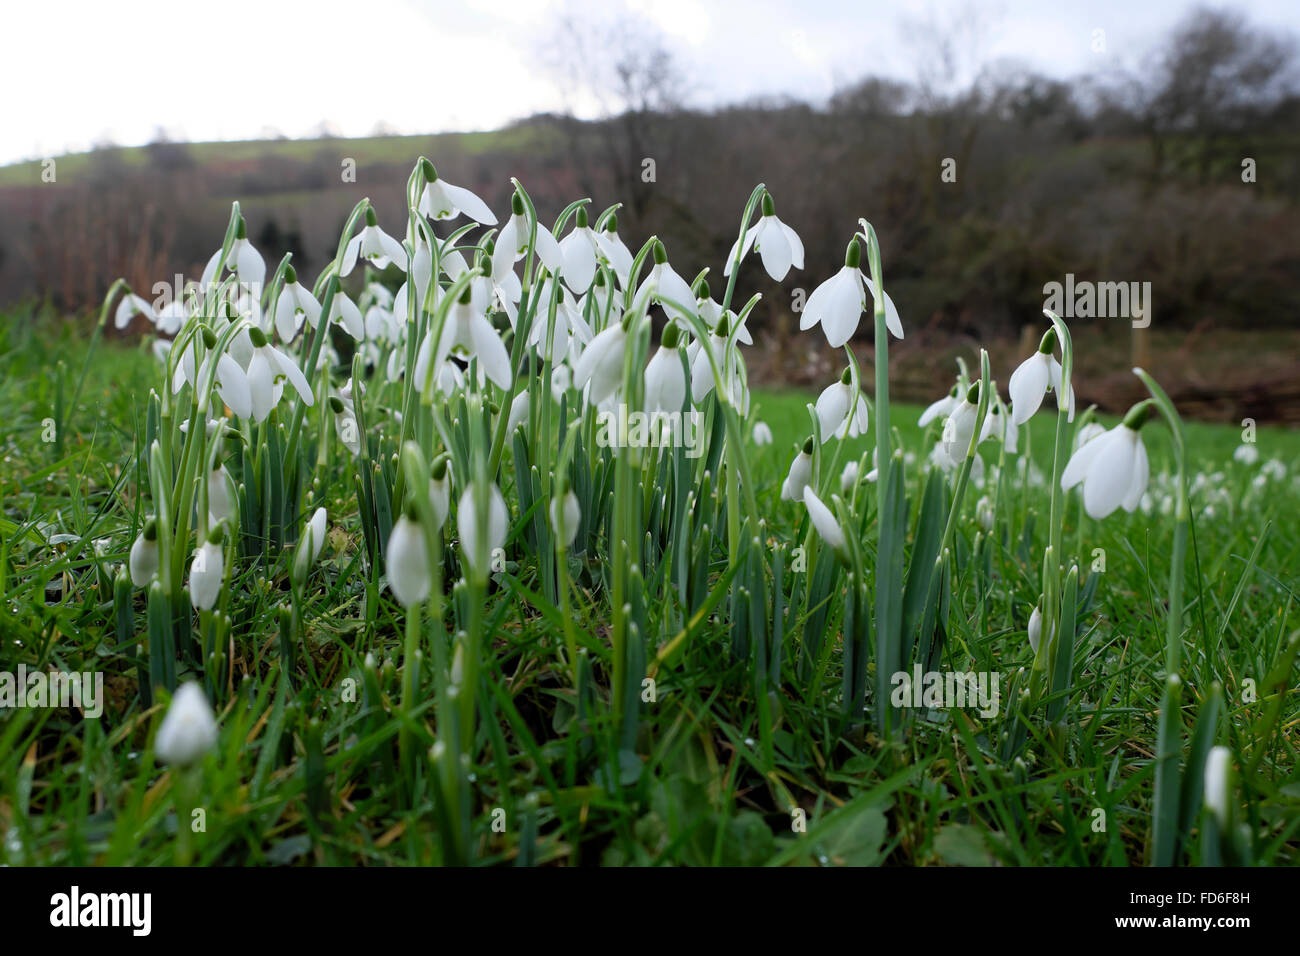 Snowdrops growing in a garden lawn in January 2016 in Carmarthenshire, Wales UK  KATHY DEWITT - Stock Image